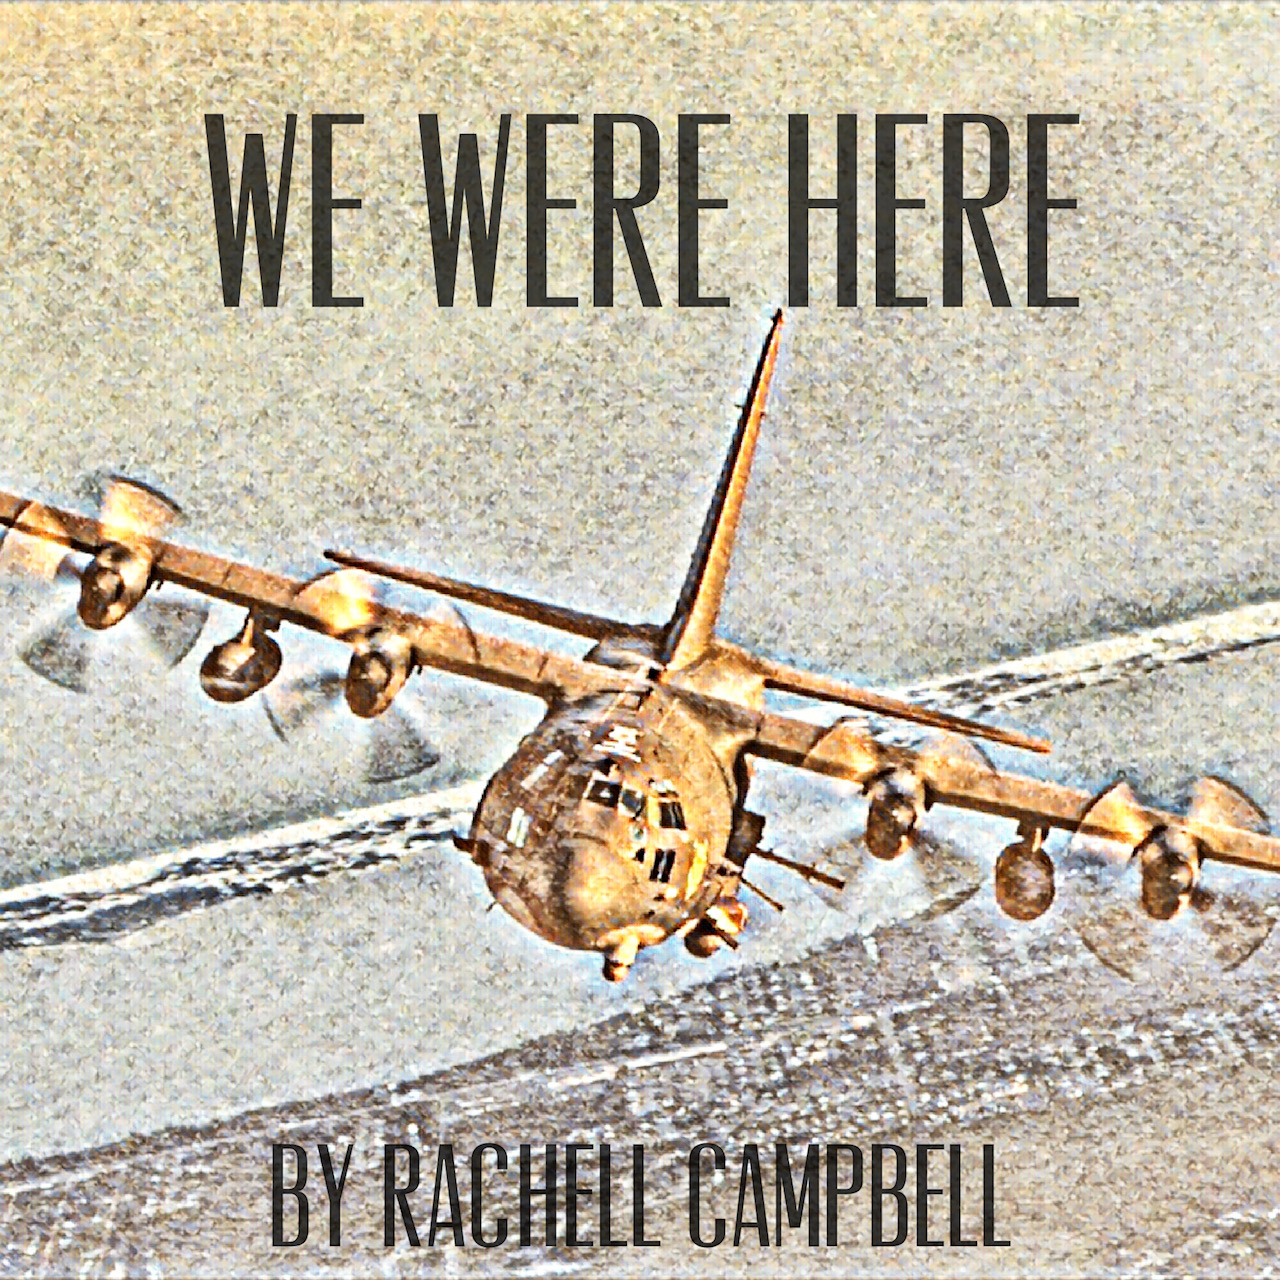 A true story of four women who worked in an aircraft factory throughout WWII and the day they were informed their jobs would be given to returning soldiers, relegating them back to domestic life.   Producer: Allison Darby Gorjian